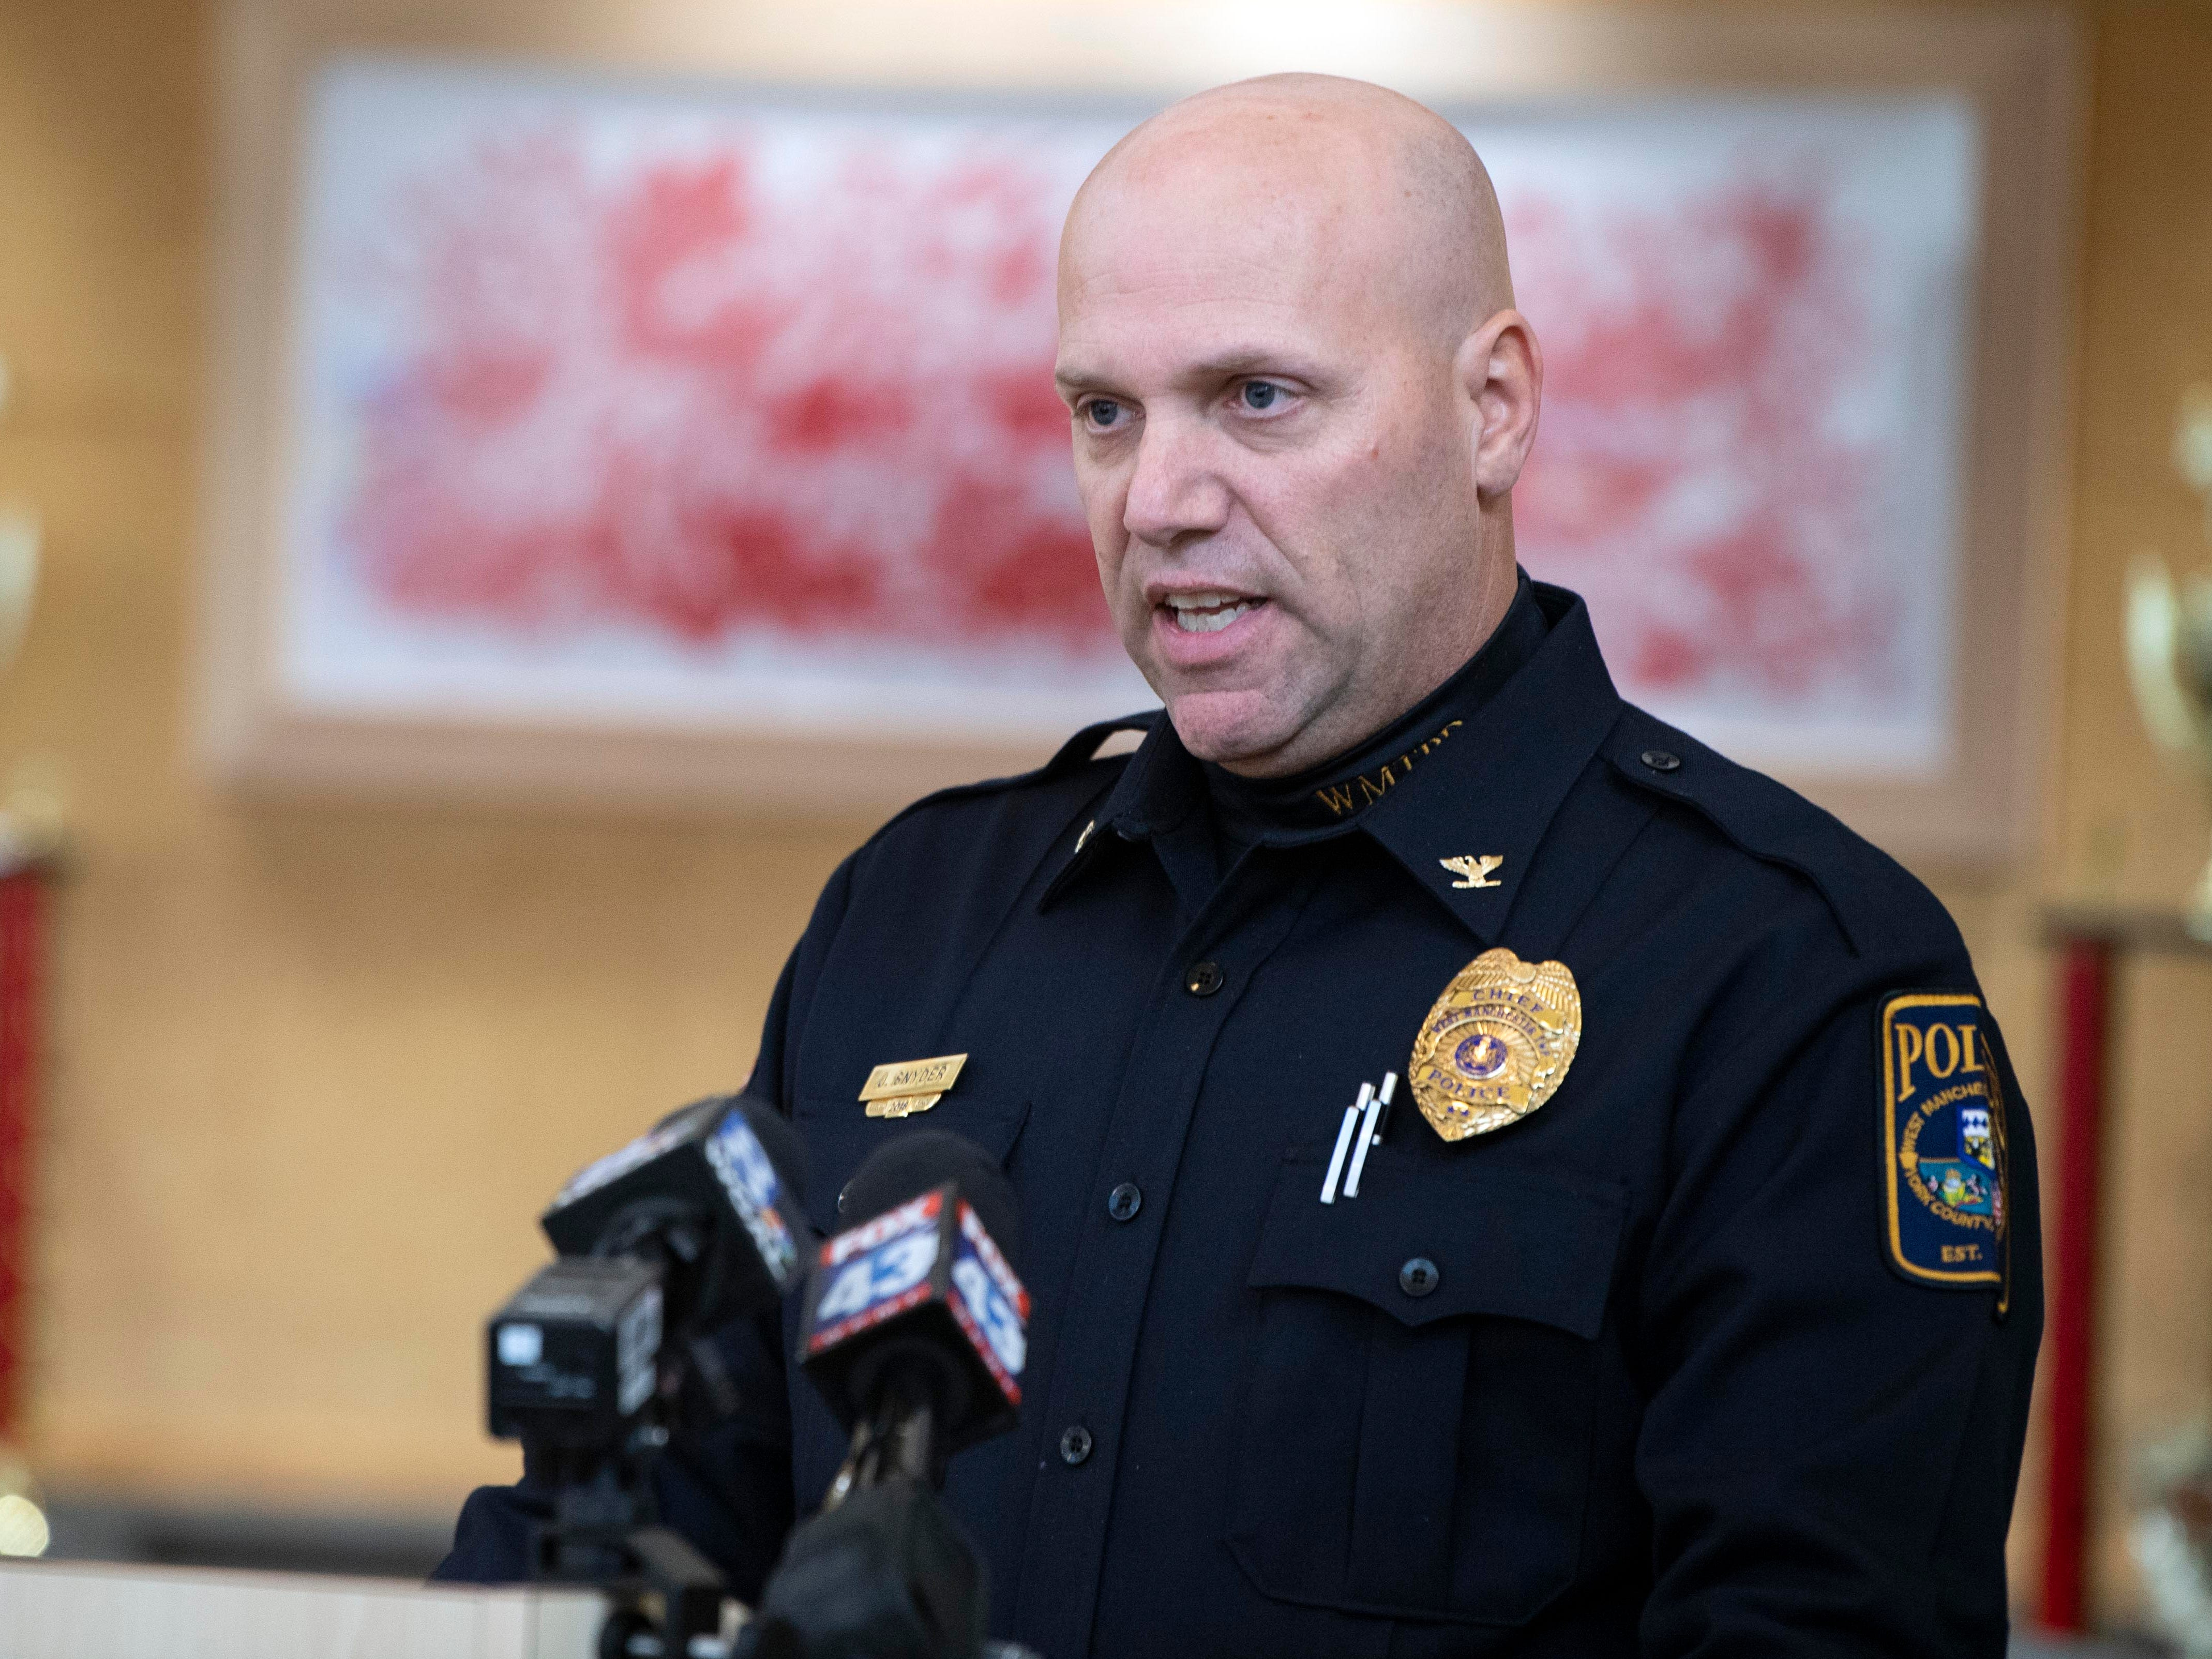 West Manchester Township Police chief John Snyder speaks about the ongoing investigation in the 2013 cold case during a press conference at the West Manchester Township building, Thursday, Dec. 6, 2018.